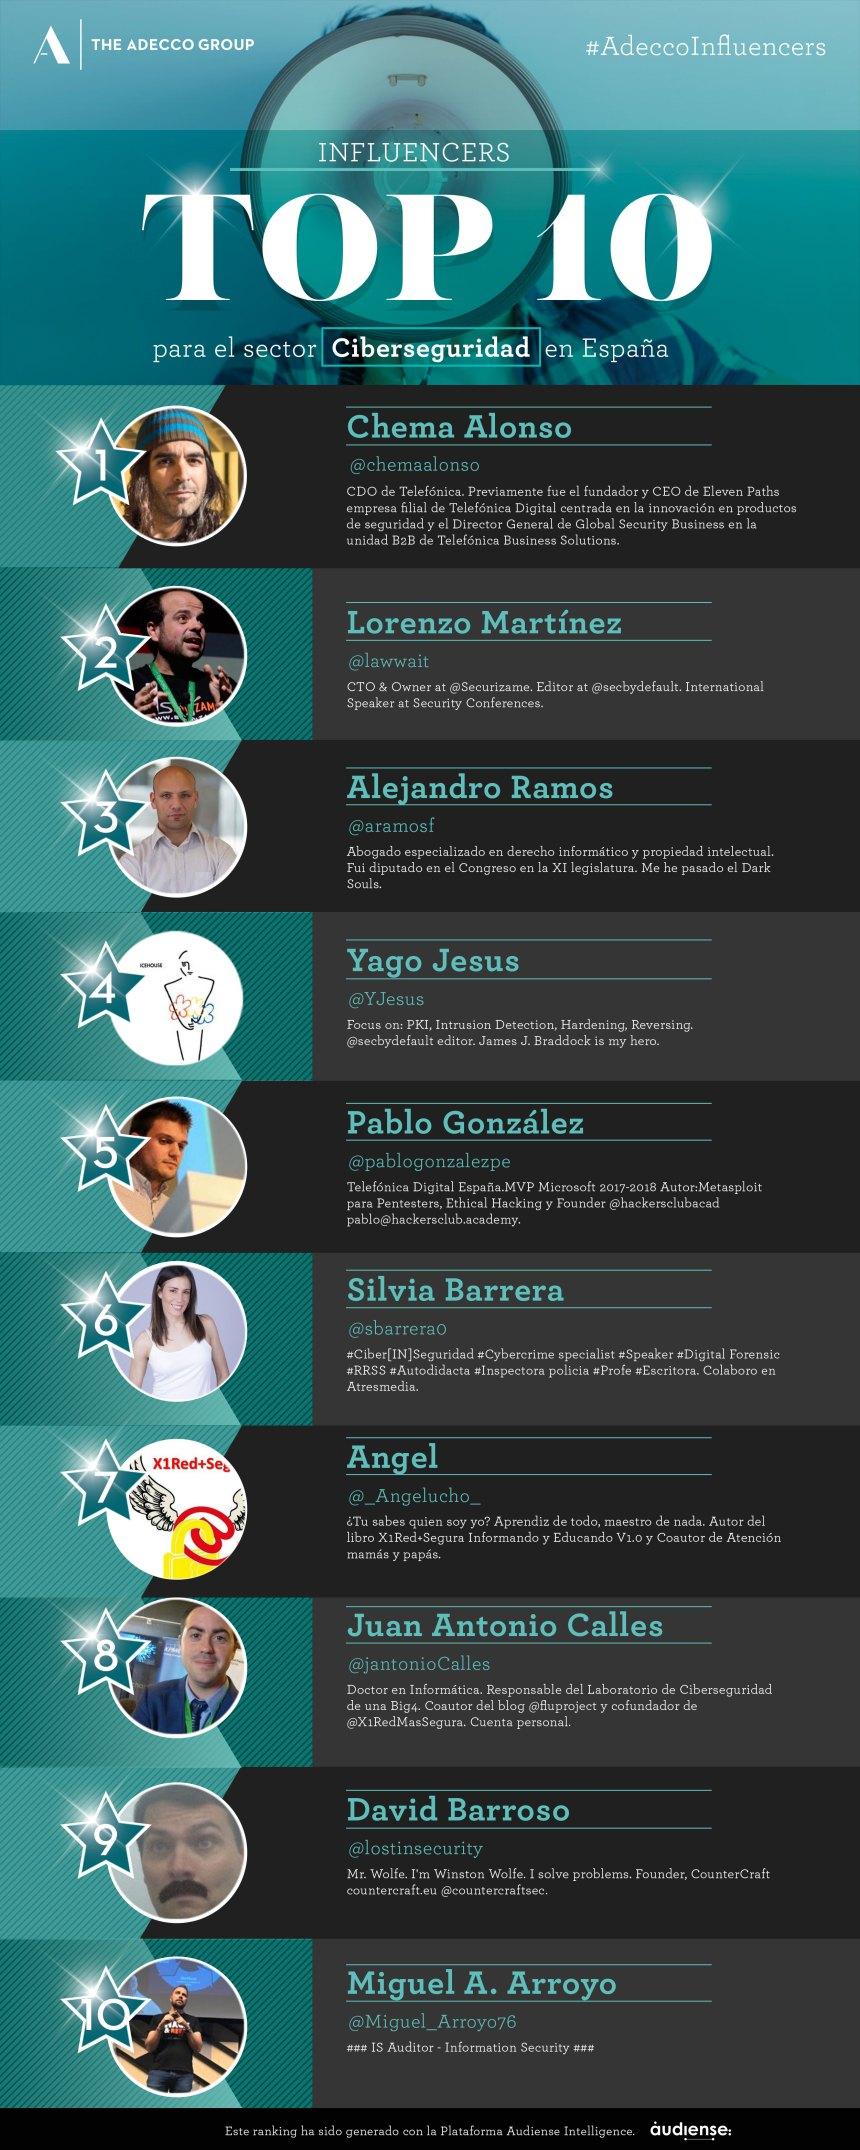 Top 10 influencers sobre ciberseguridad en España